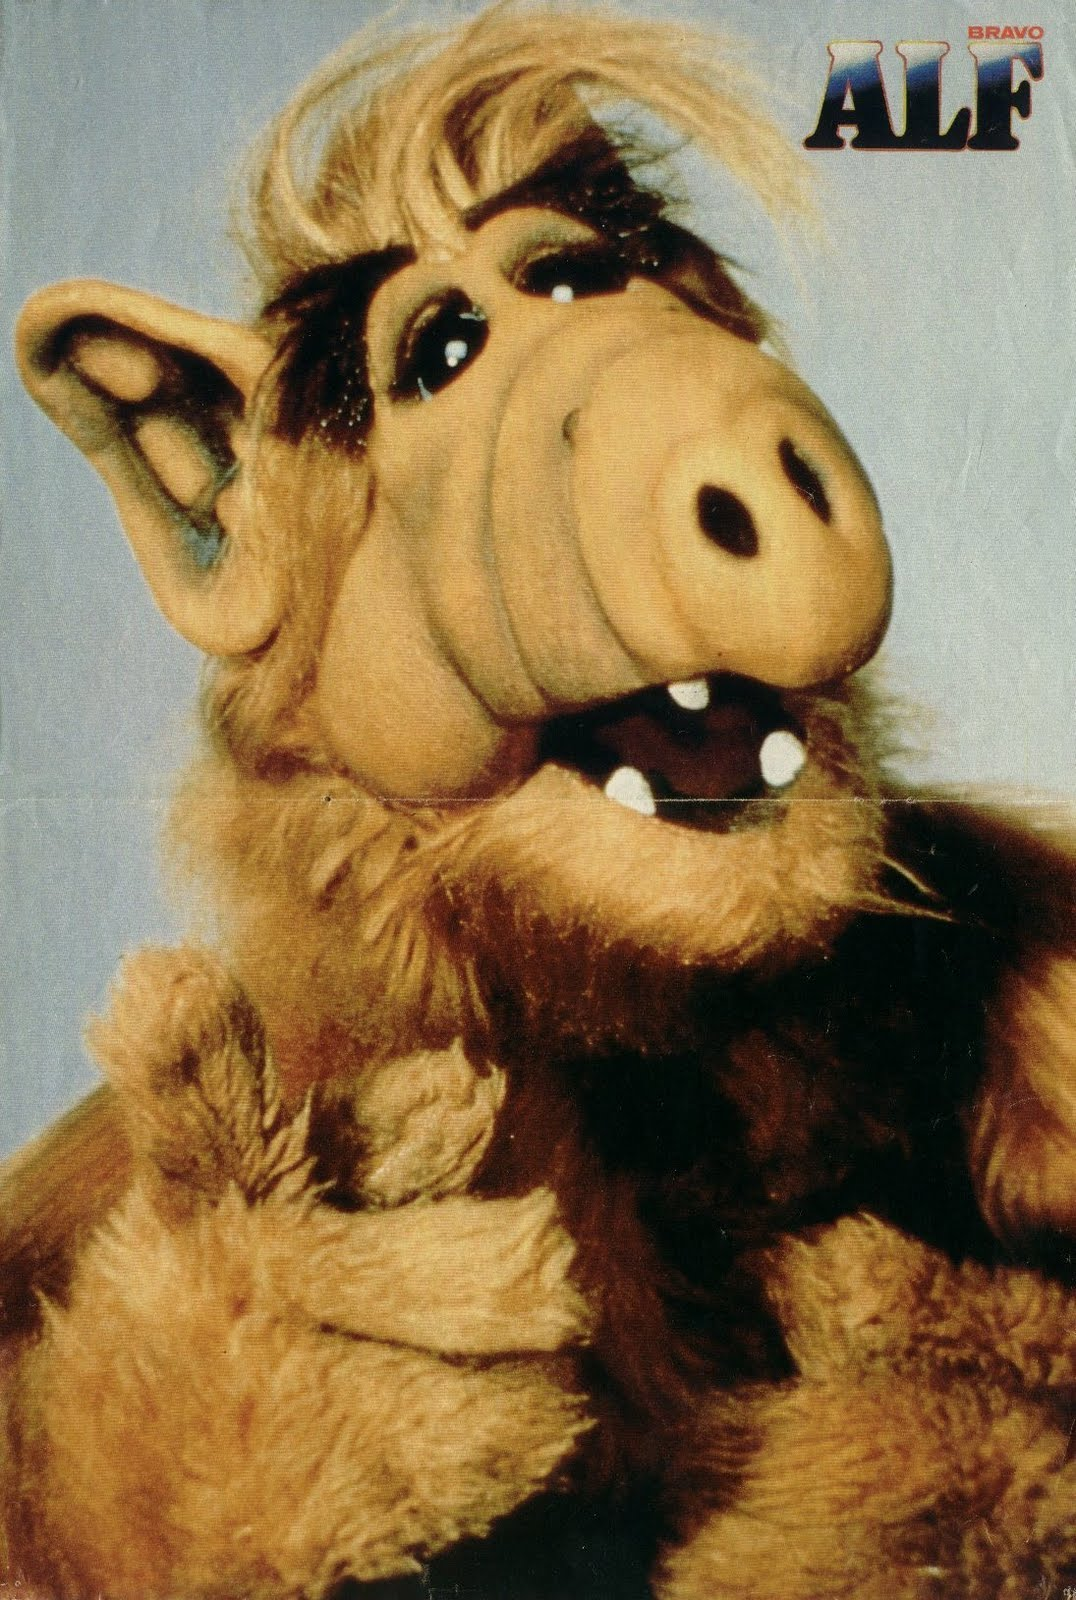 Magnetic Heart: remember alf? he's back! in pog form.